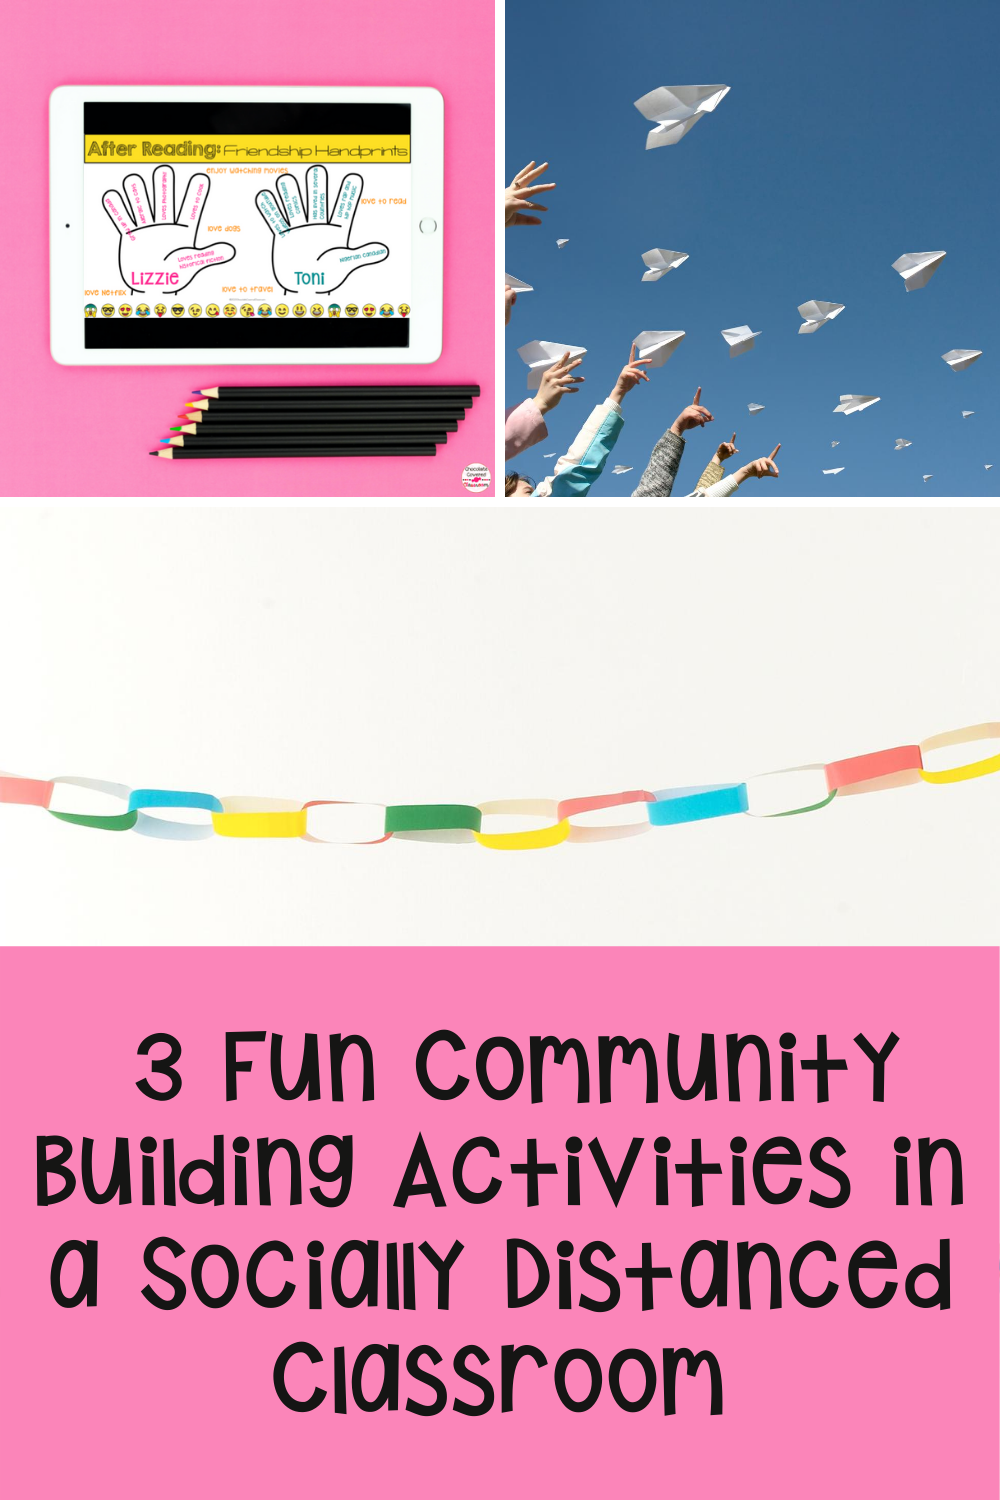 3 Fun Community Building Back to School Activities in a Socially Distanced Classroom